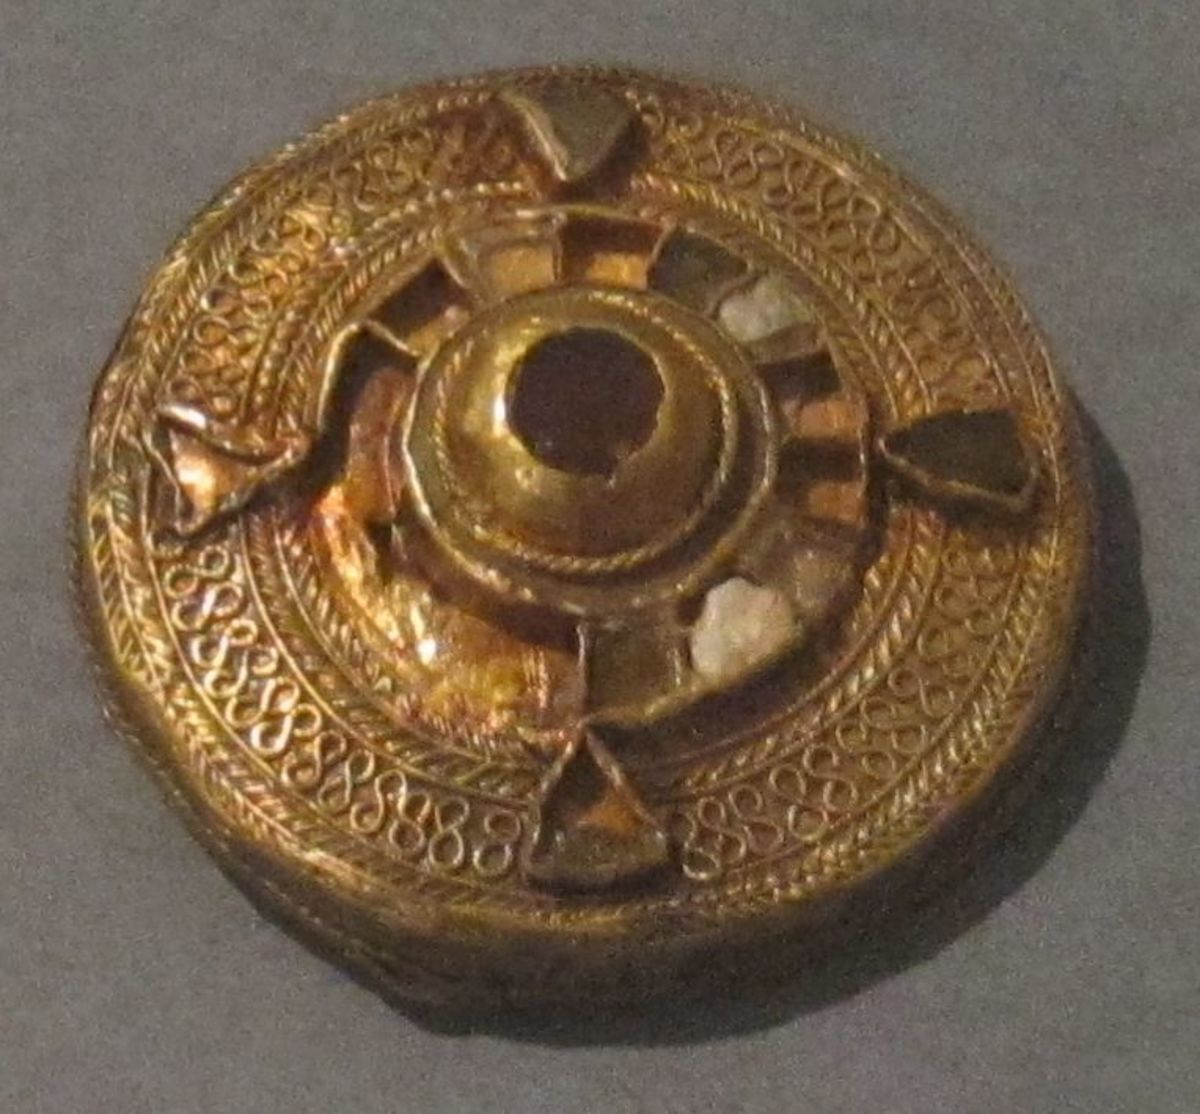 Early Middle Ages/Dark Ages garment brooch from between 400 - 700 CE